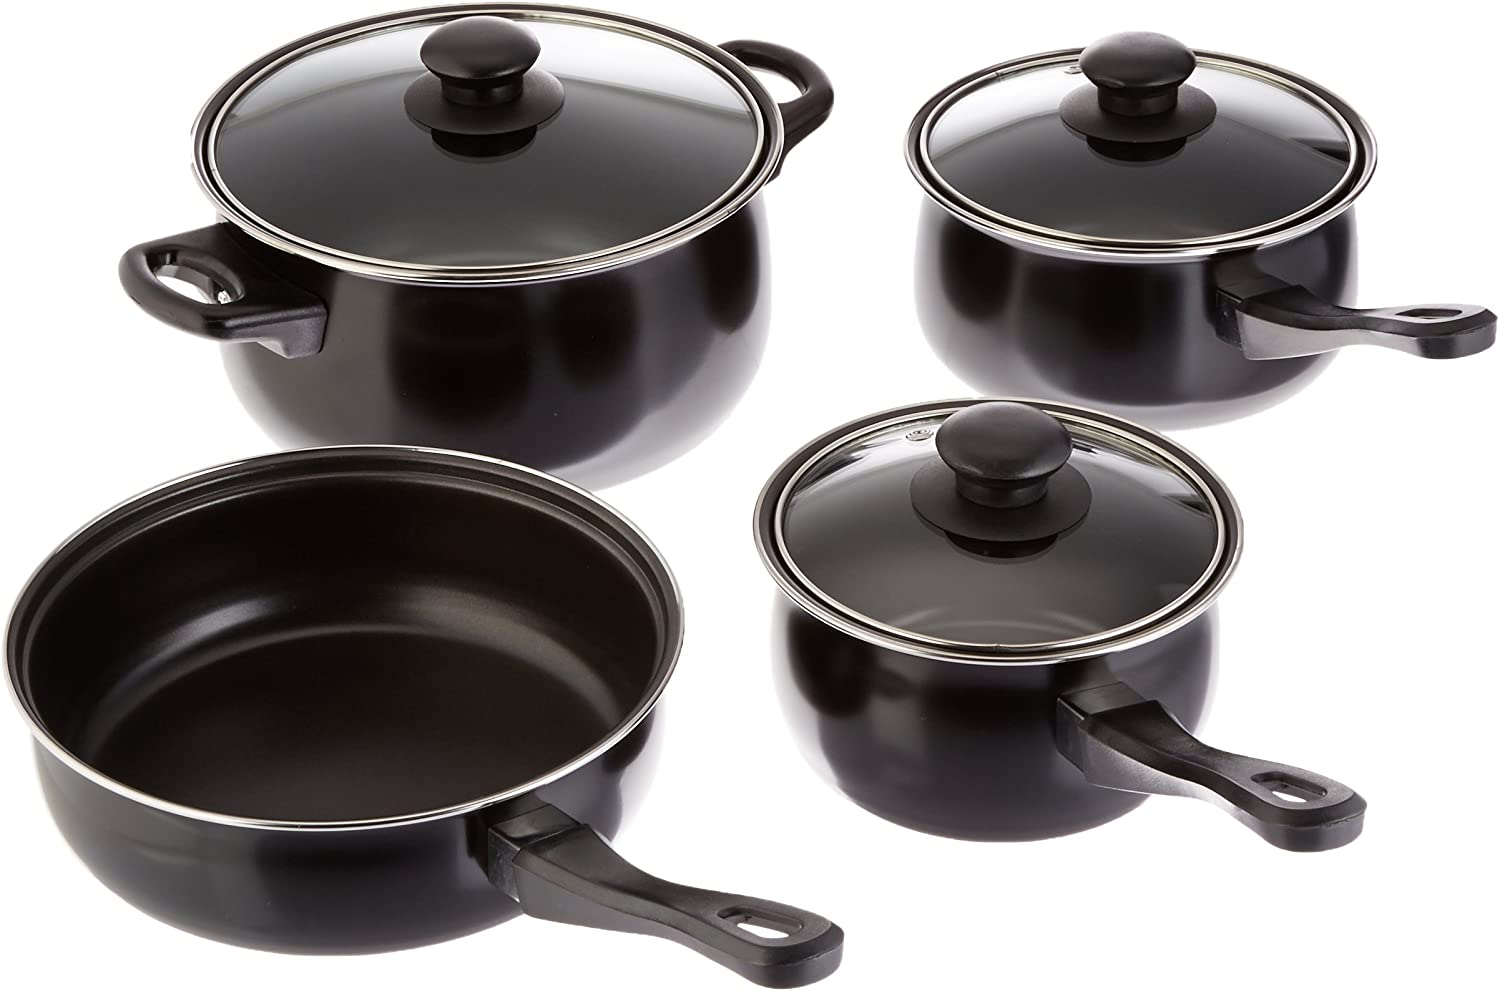 Amazon Com Gibson Home Back To Basics Carbon Steel Nonstick Cookware Set 7 Piece Black Pots And Pans Set Nonstick Kitchen Dining